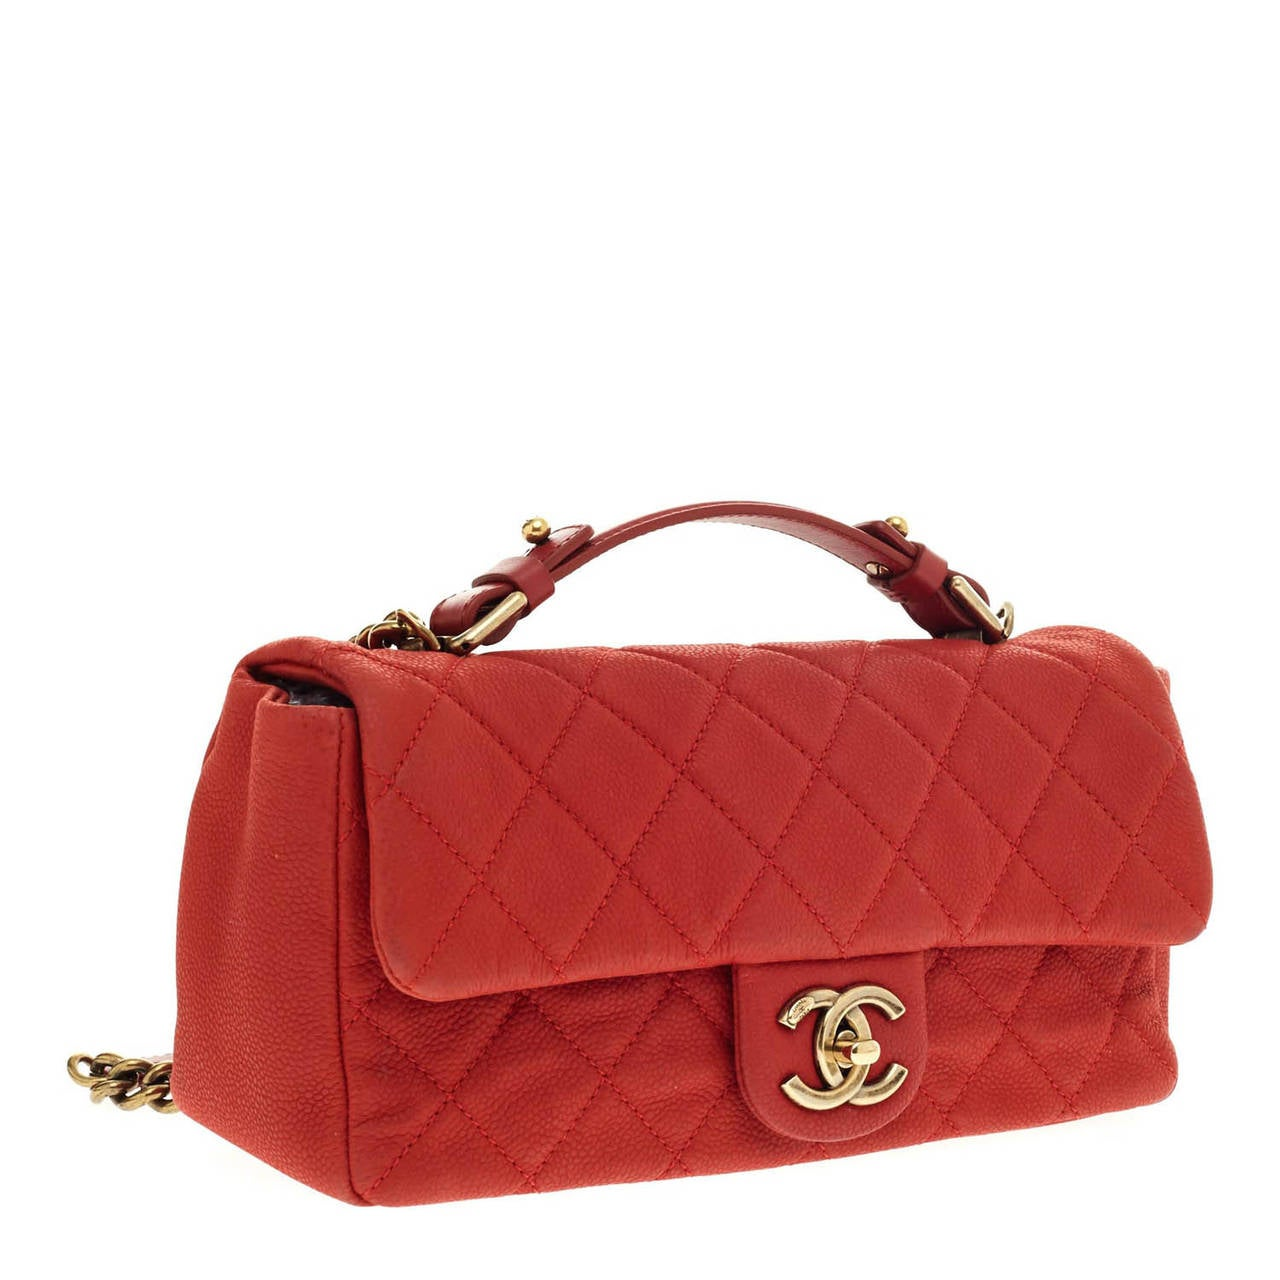 945c61d7411c58 Chanel Flap Bag With Handle Caviar | Stanford Center for Opportunity ...